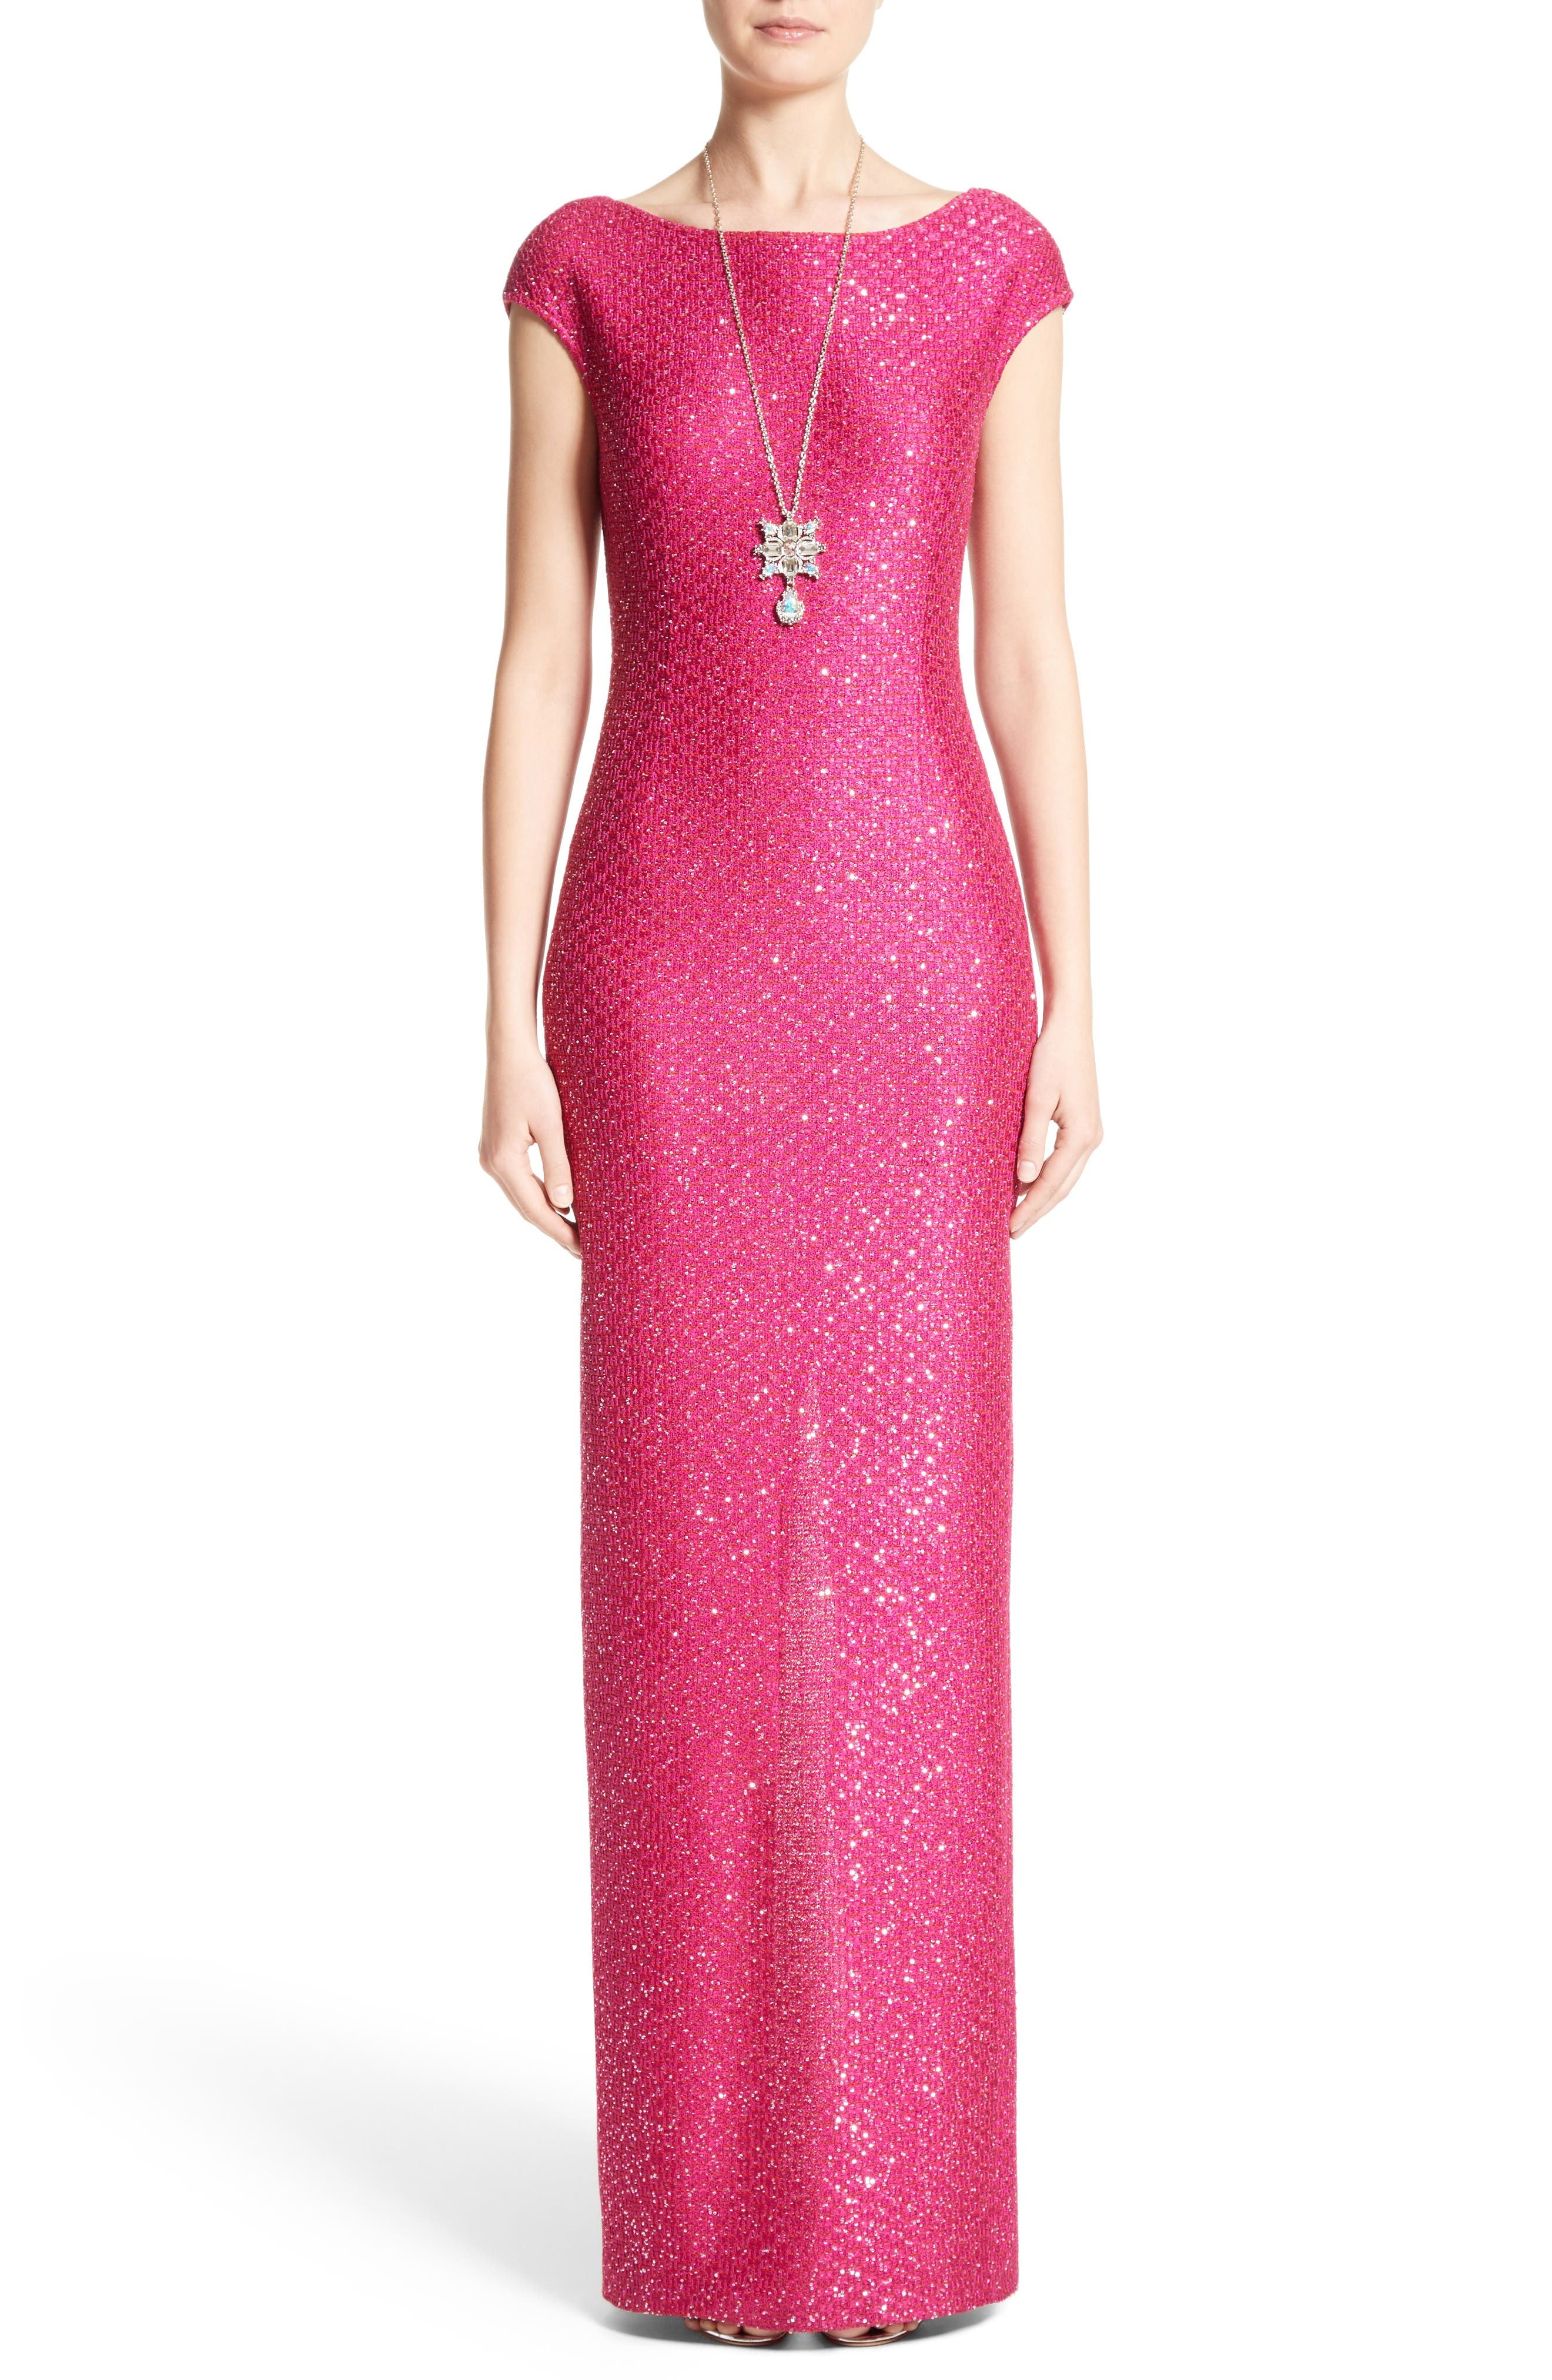 Alternate Image 1 Selected - St. John Evening Sequin Knit Column Gown